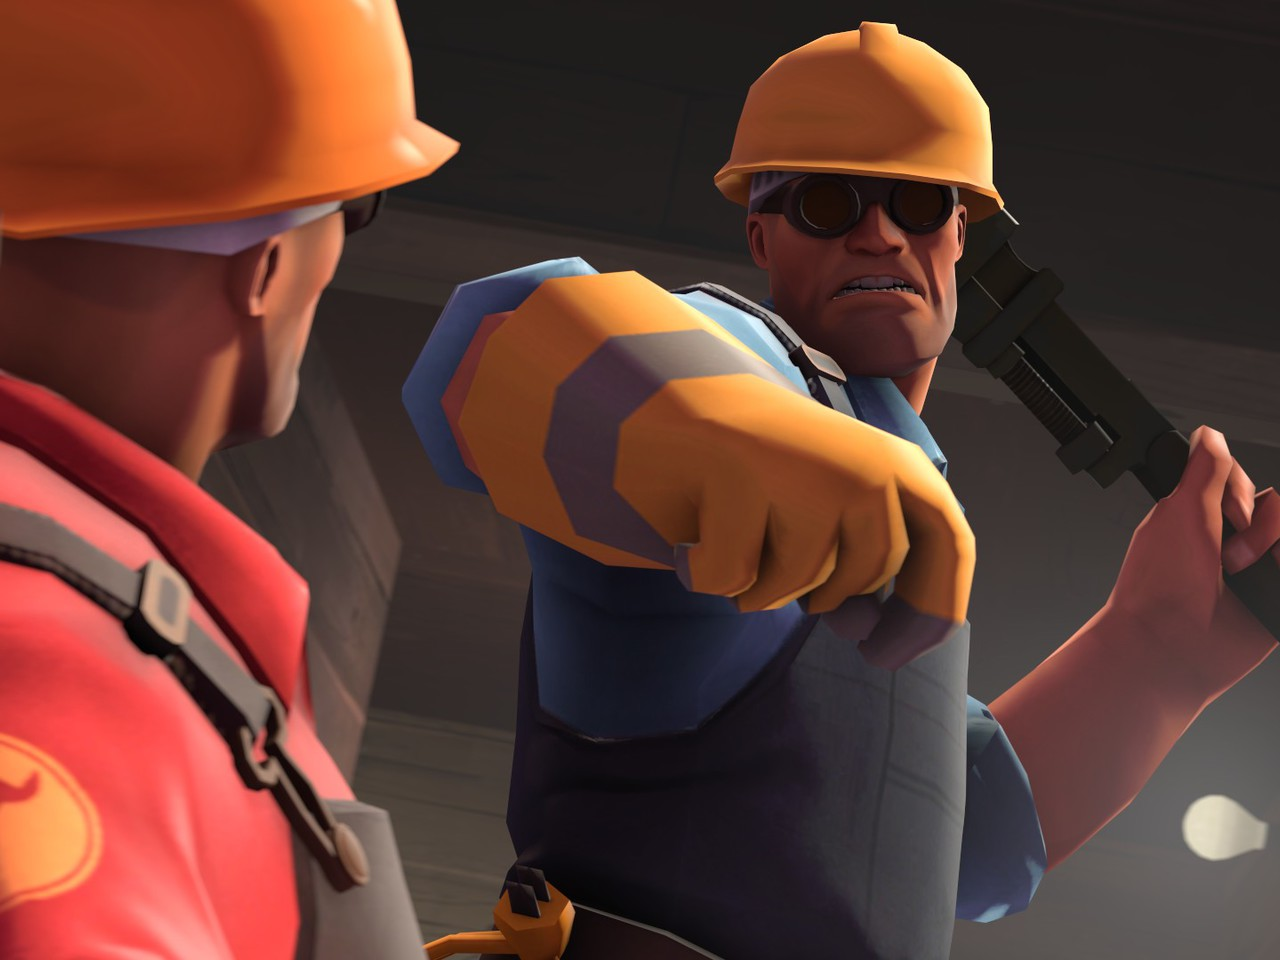 Video games engineer tf2 team fortress 2 wallpaper ...